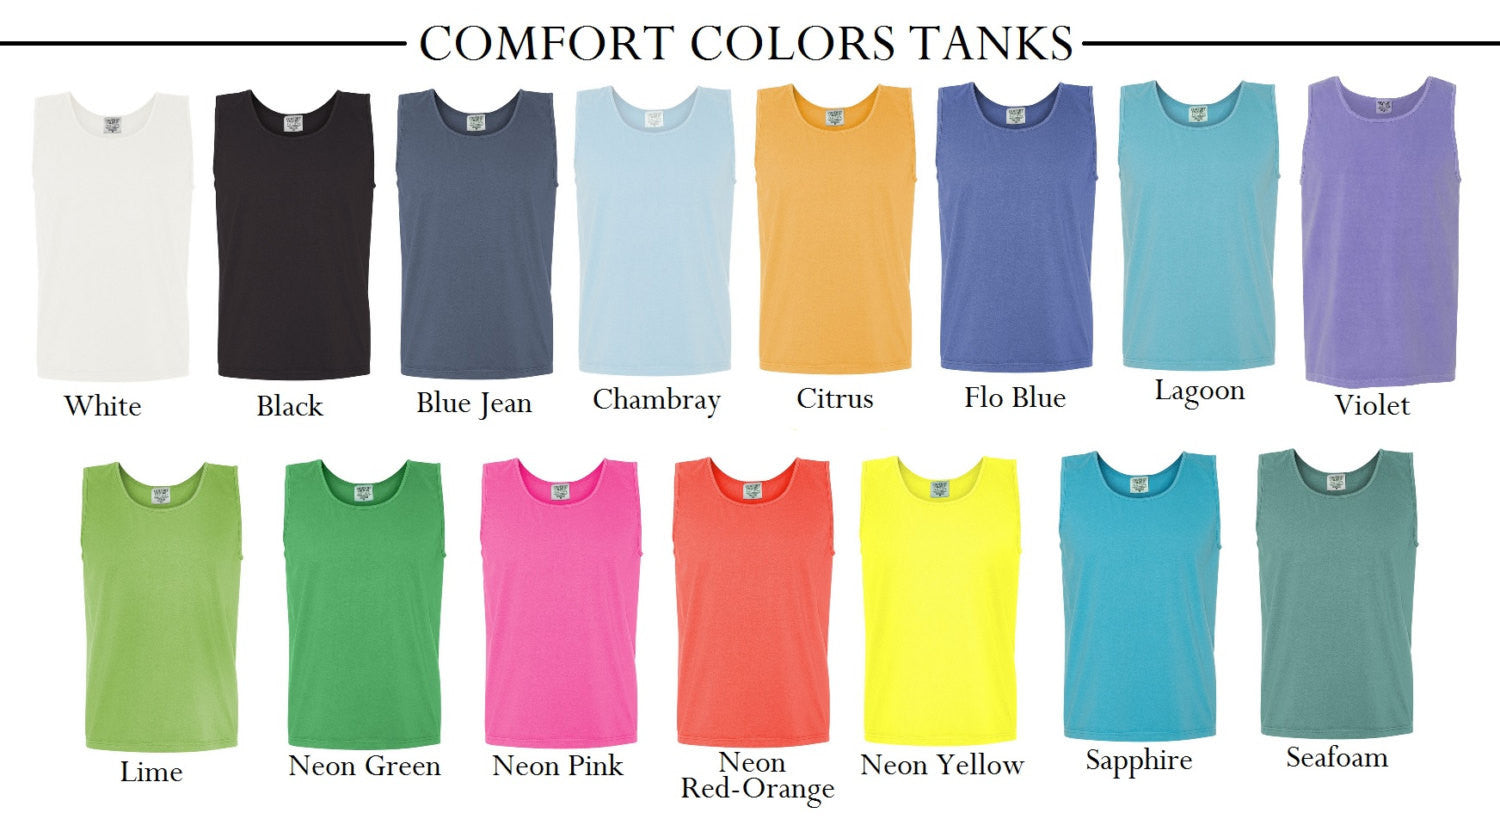 collections tank red comforter everything comfort colors code tanks top area tn